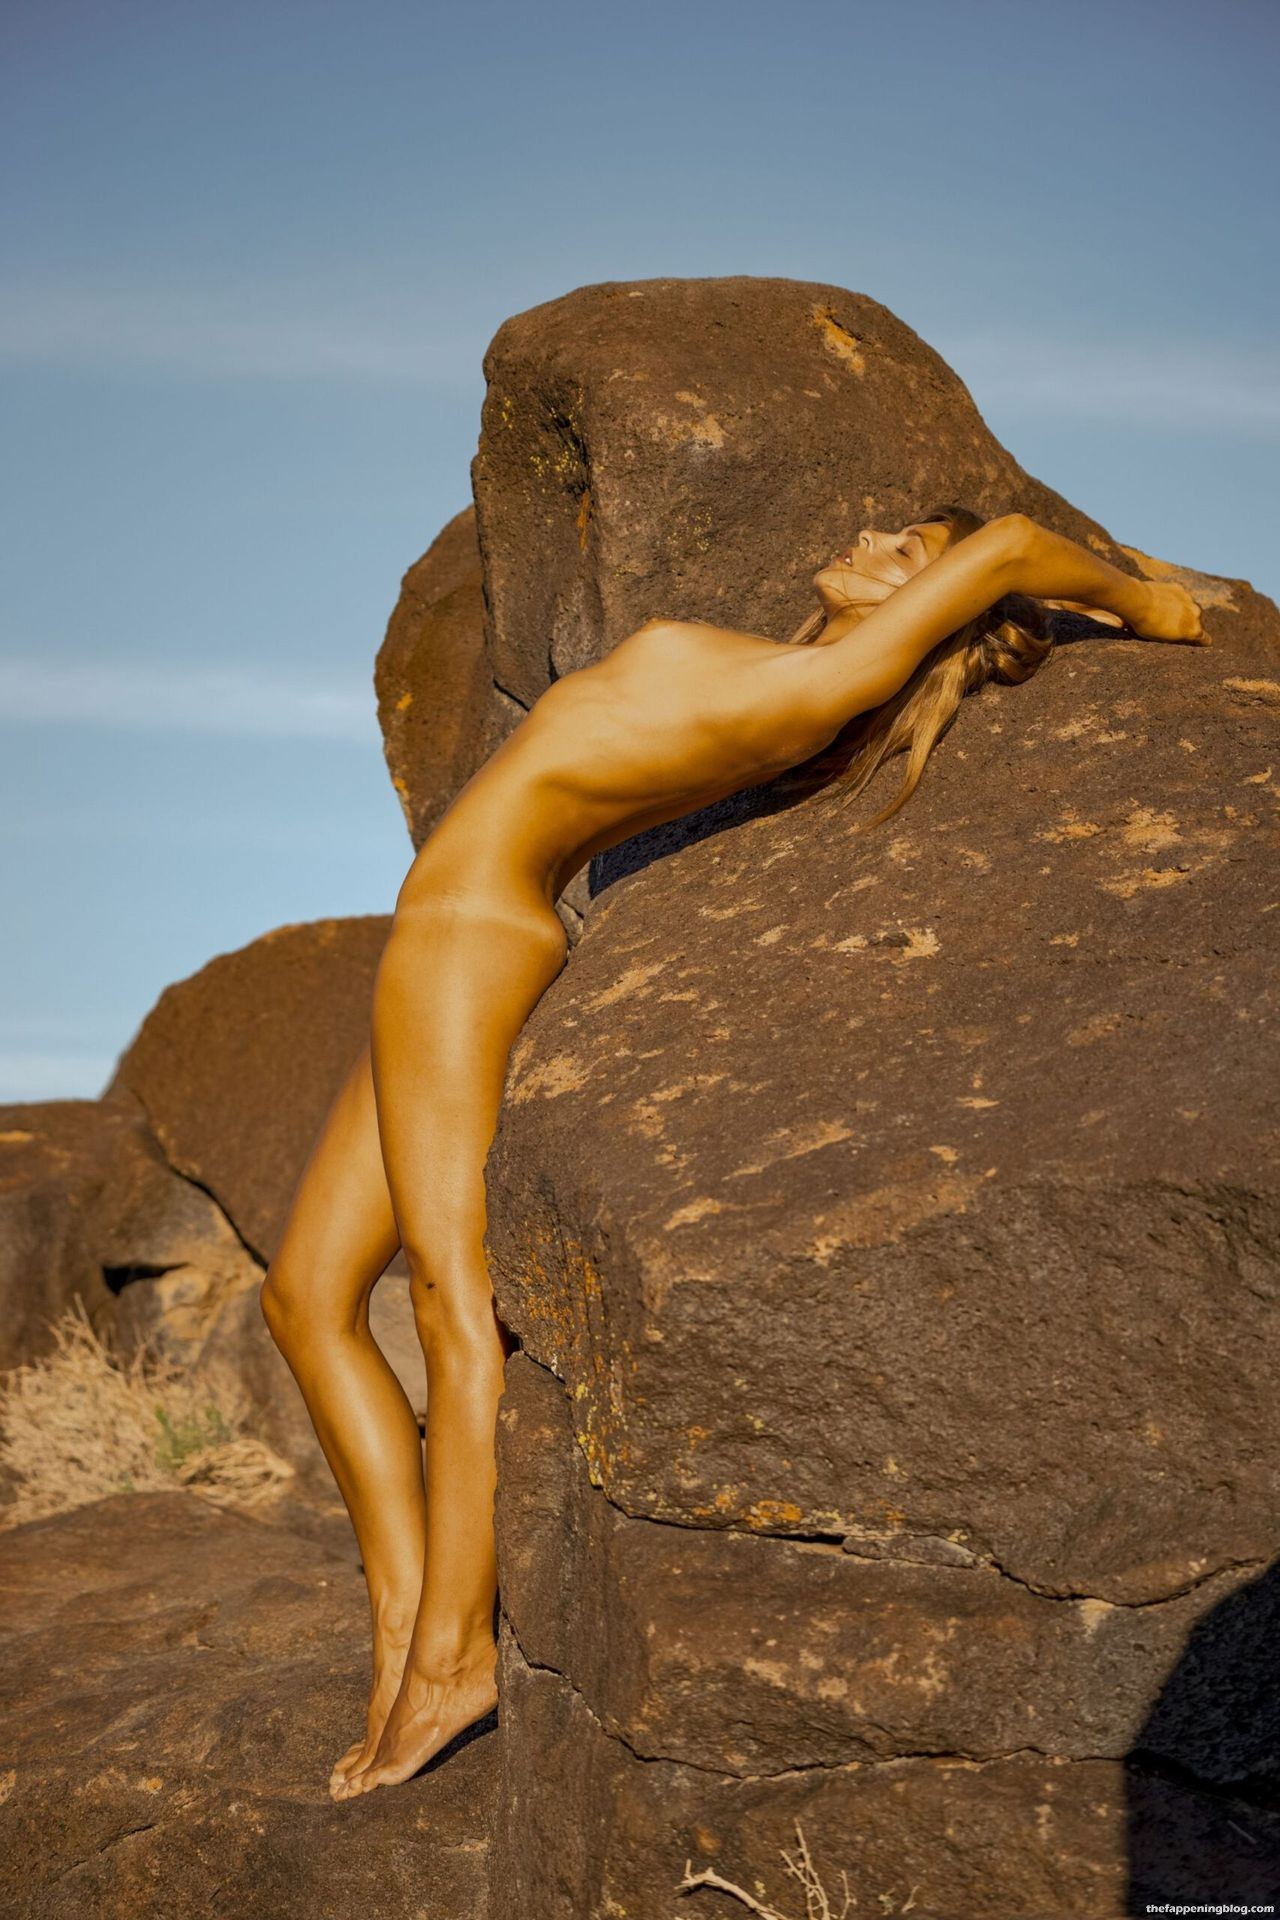 Marisa-Papen-Stunning-Naked-Body-42-scaled1-thefappeningblog.com_.jpg